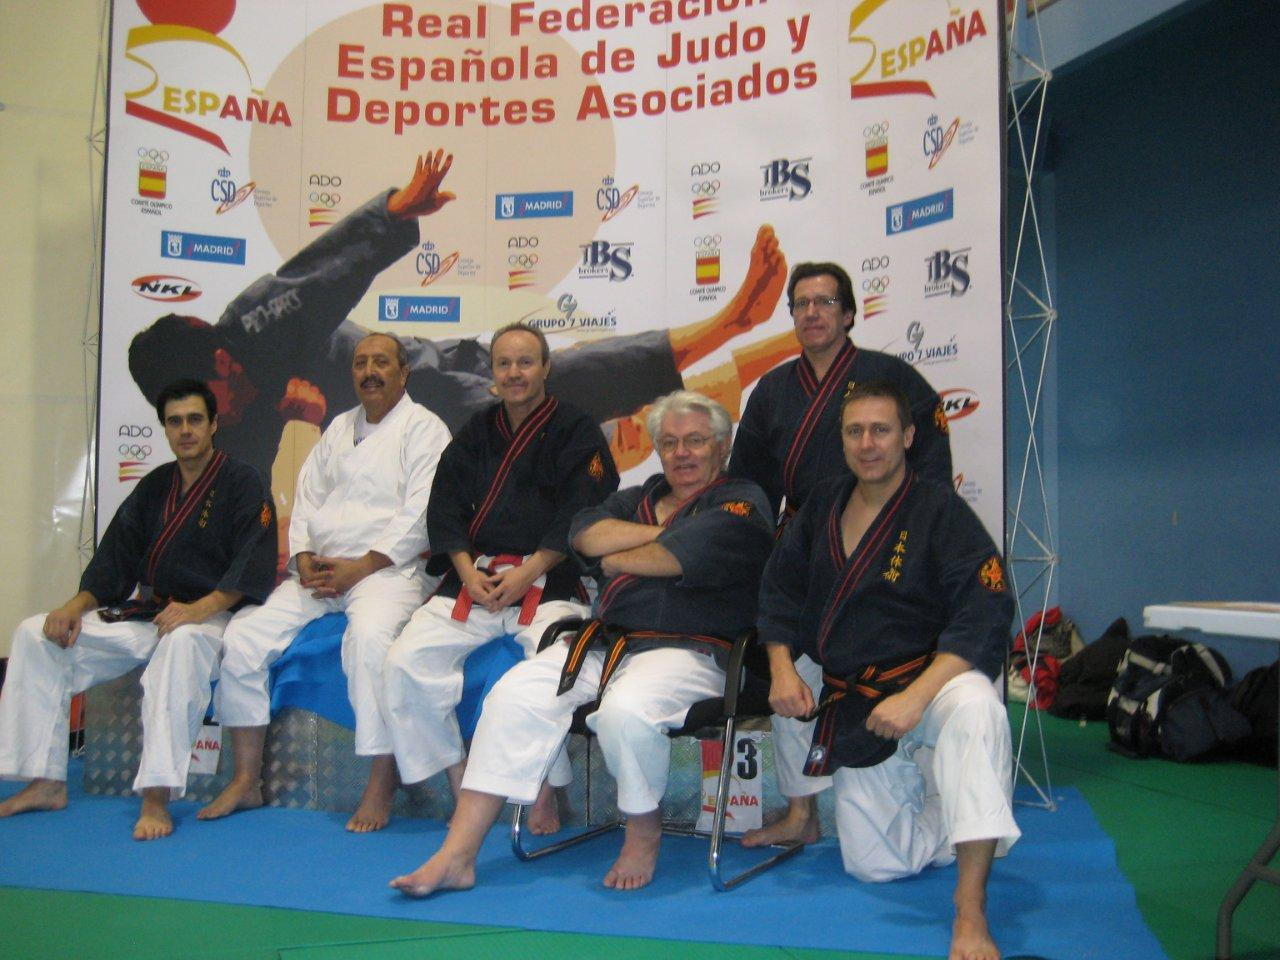 MADRID CURSO-INTERNACIONAL 2010 - 2